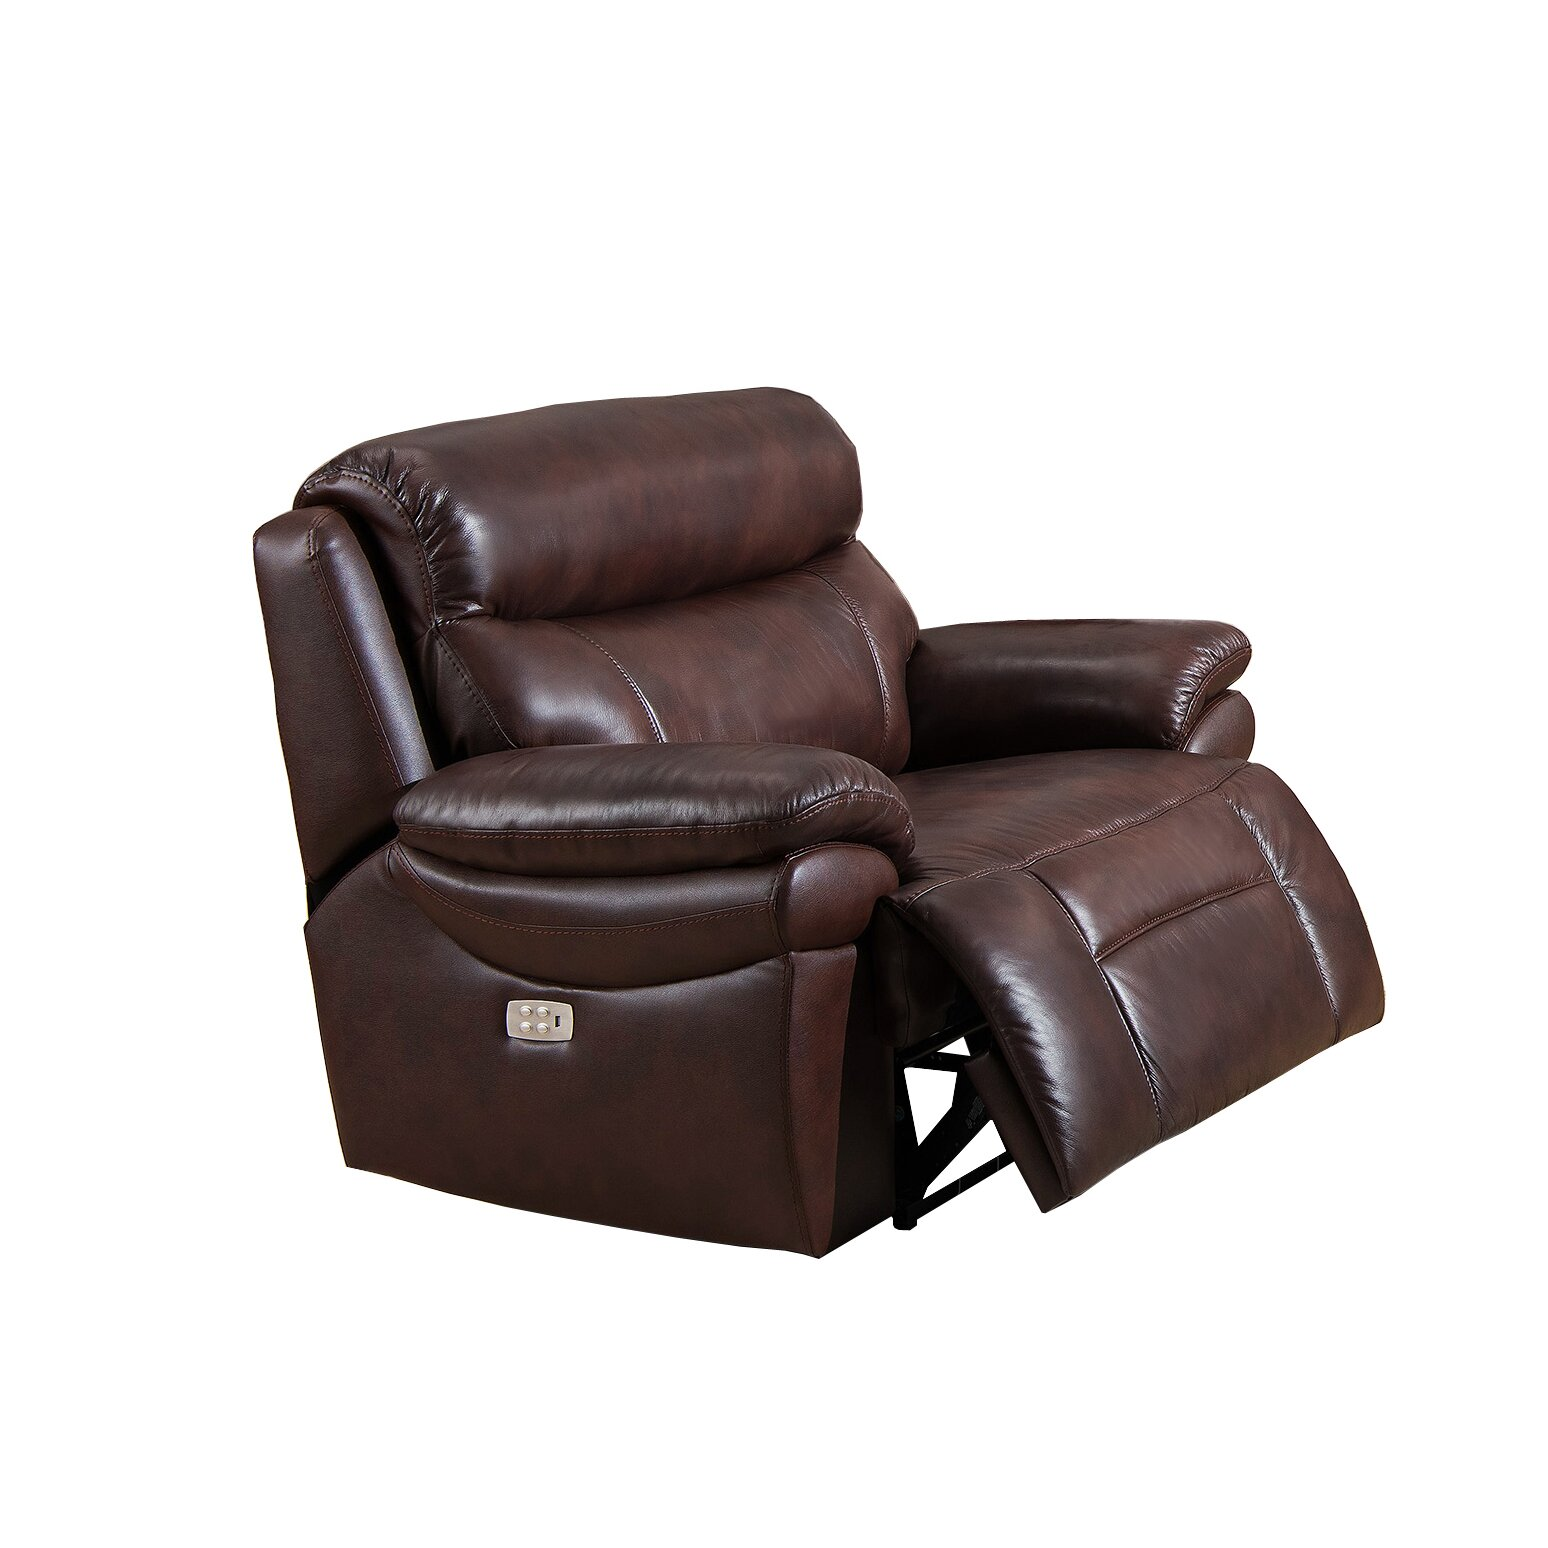 Amax Sanford 3 Piece Leather Power Reclining Living Room  : Amax Sanford 3 Piece Leather Power Reclining Living Room Set with USB Ports Power Headrests and Drop Down Table from www.wayfair.ca size 1548 x 1548 jpeg 234kB